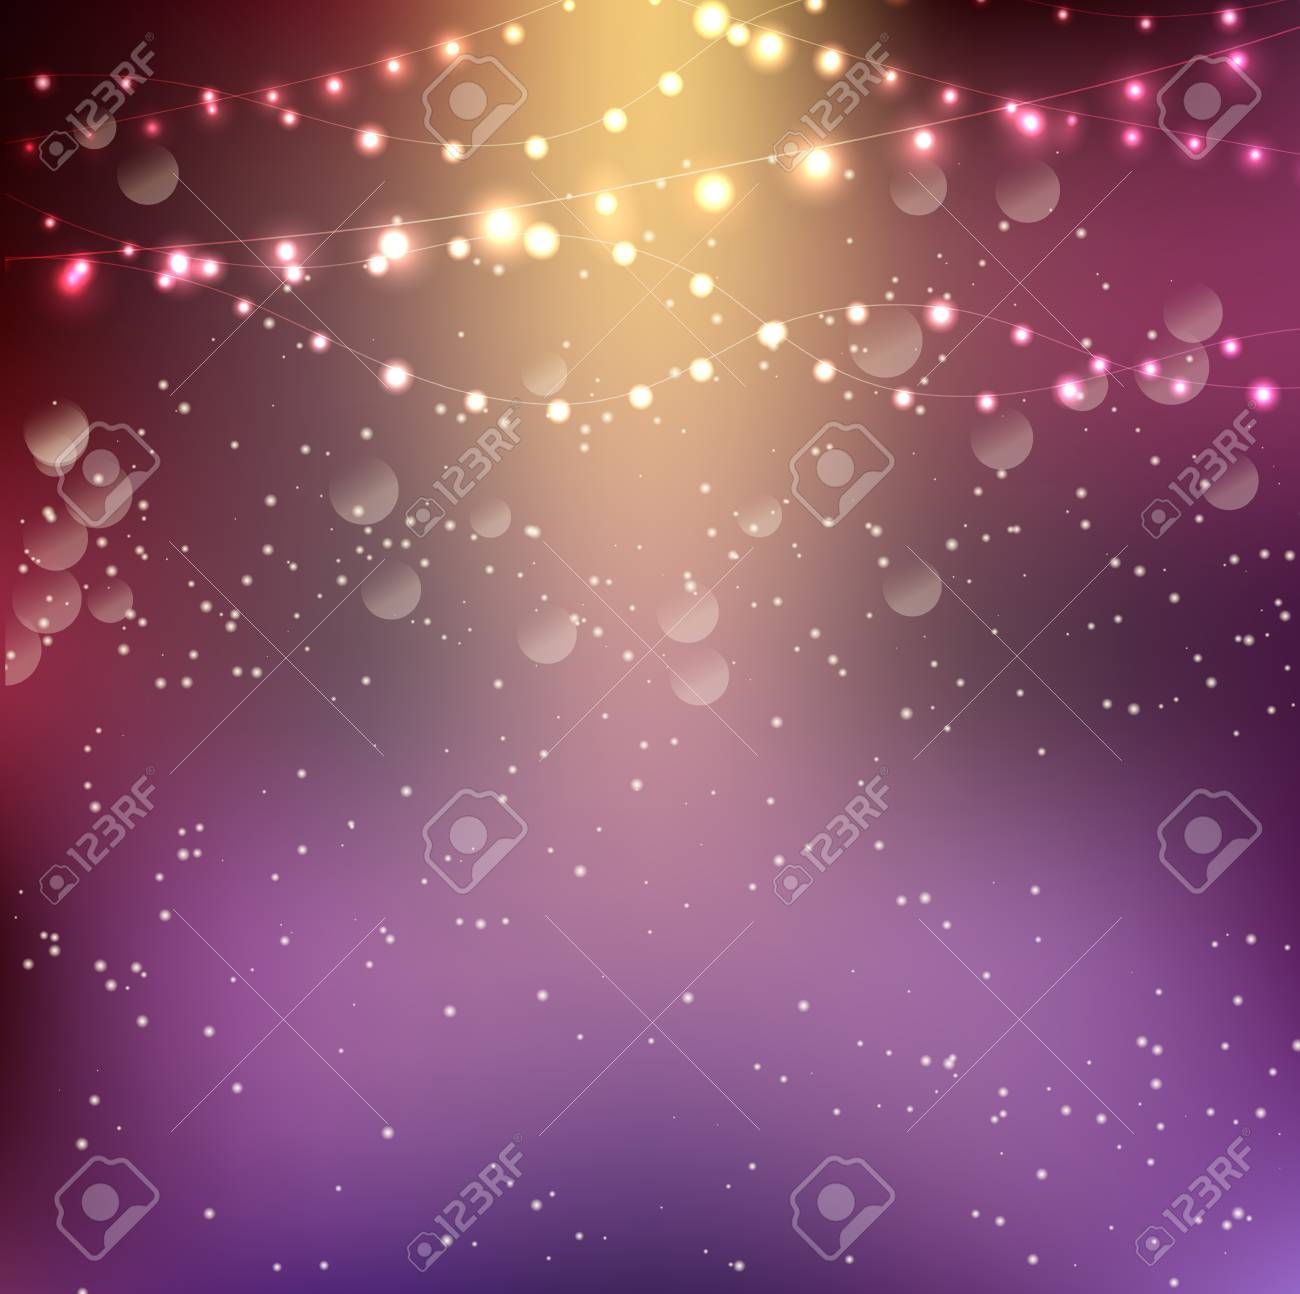 Christmas Background With String Lights Stock Photo